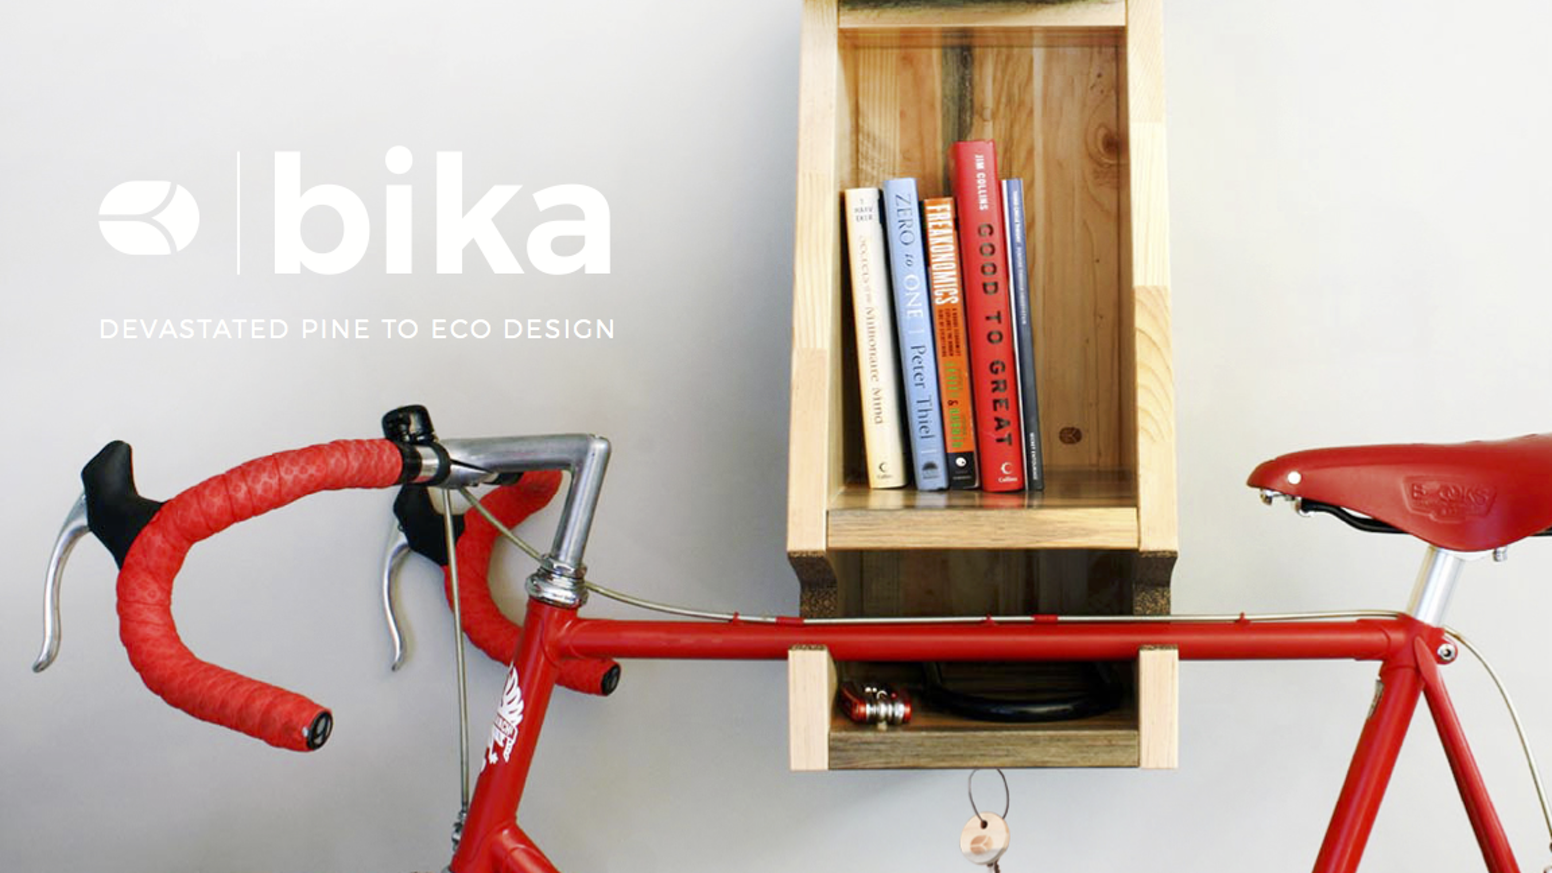 Crafted from exotic blue-streaked pine beetle kill wood, Bika elegantly displays your bike, holds your gear, and mitigates pollution.